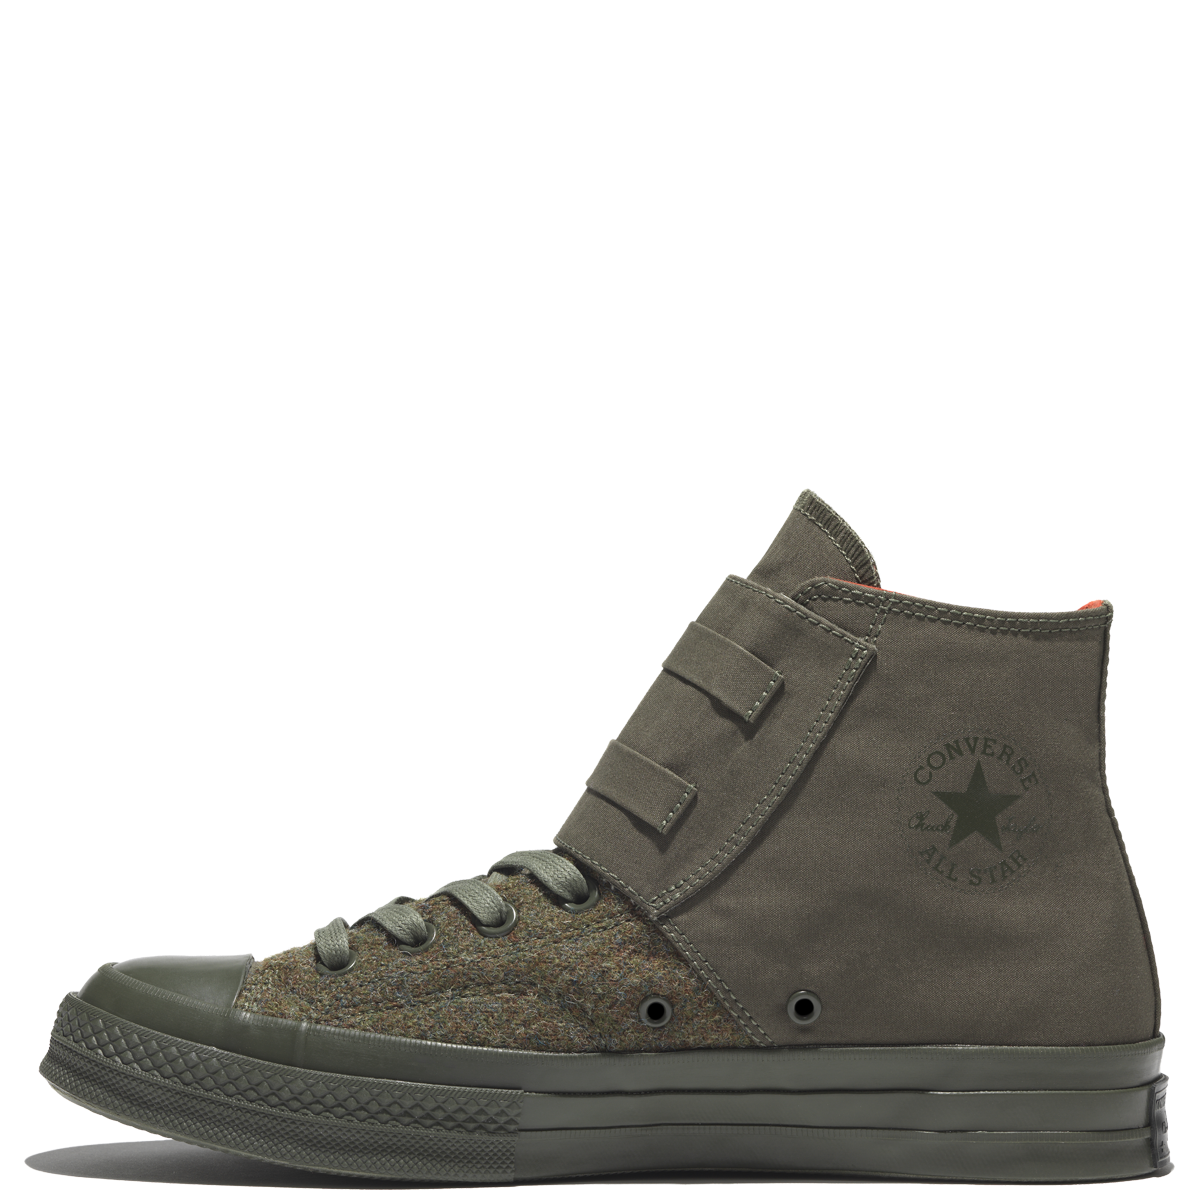 Converse, Nigel Cabourn, Converse Chuck Taylor All Star 70